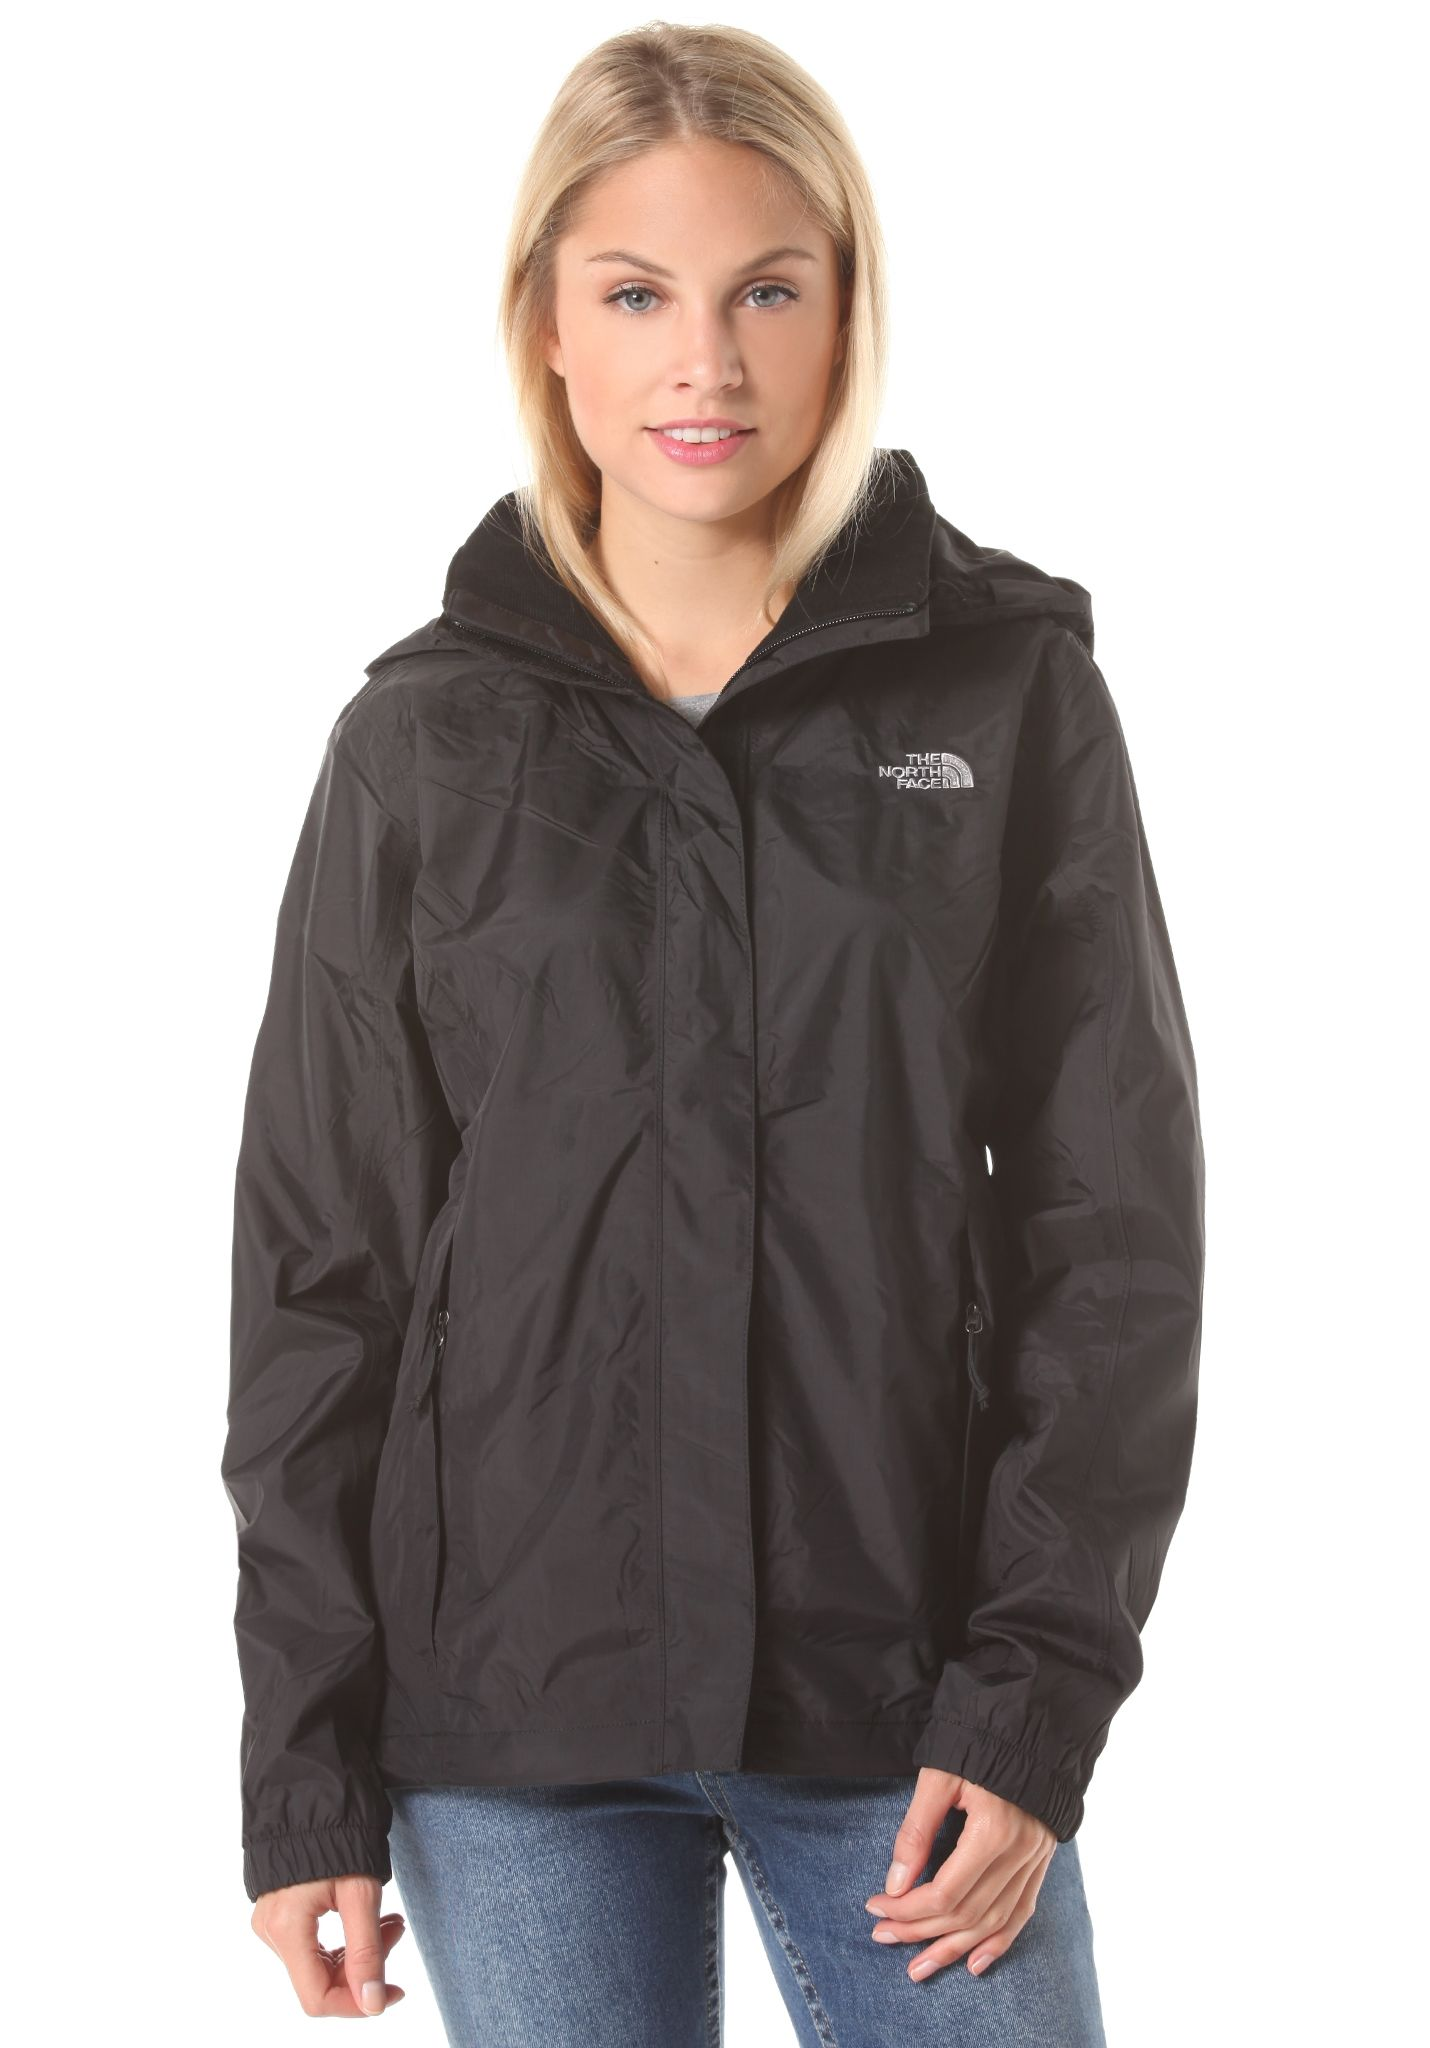 THE NORTH FACE Resolve - Functional Jacket for Women - Black - Planet Sports 3316a011d